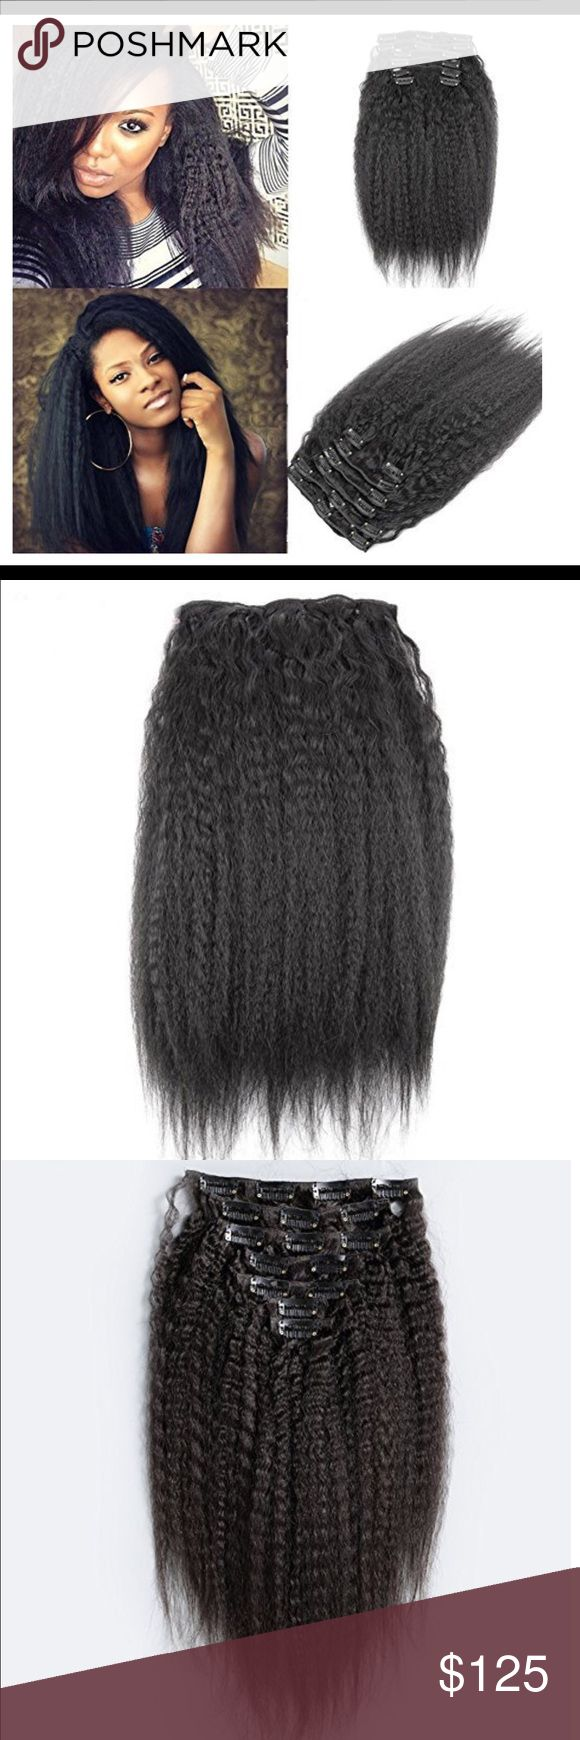 Virgin Kinky straight clip ins 7pcs Spice it up and keep it ethnic! With our Gorgeous Kinky Straight Clip In Extensions.   Please keep in mind this is Kinky Straight Hair which is much Tighter than the regular straight hair, therefore, the hair length is not the same. Please choose longer lengths if you would like your hair to be long.  Quality: 100% Virgin Human Hair, Tangle Free, Shedding Free, Soft Hair  Hair Can be Styled,Cut,Colored,Highlighted,Treated Just Like Your Own Hair  5.Hair…